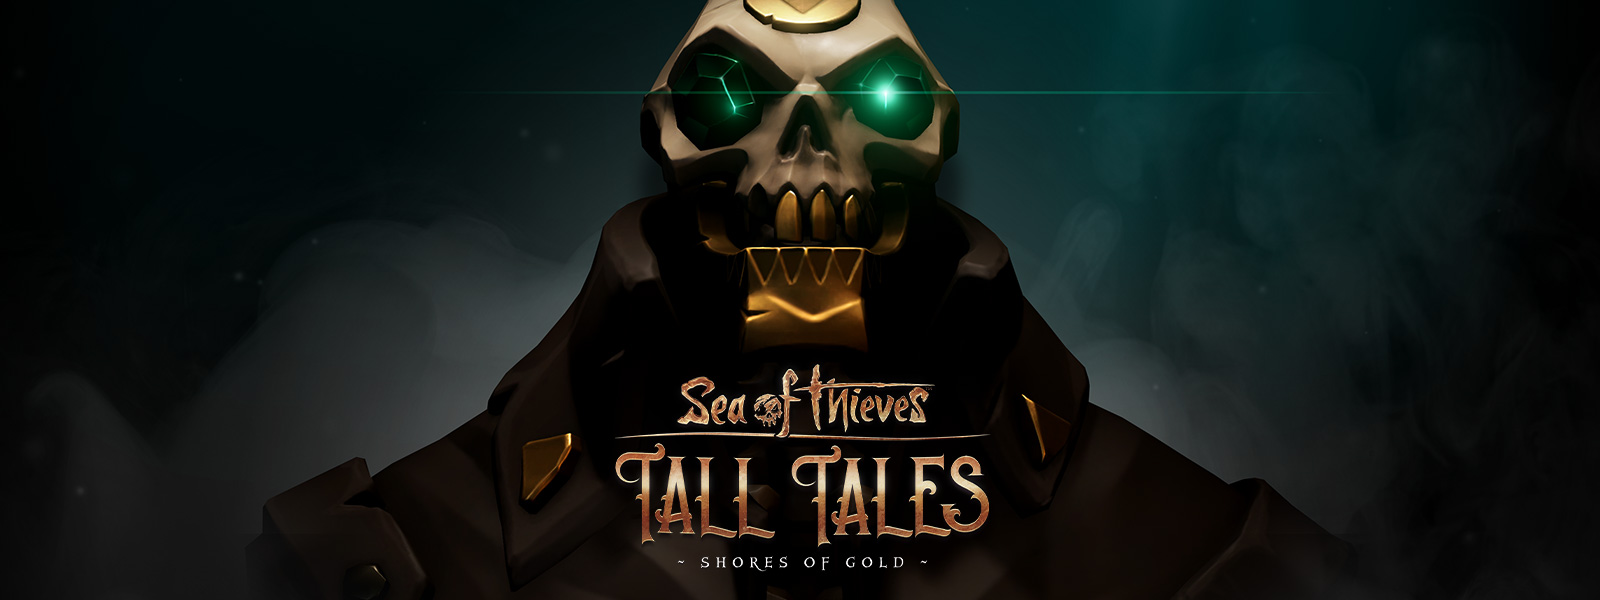 Logo di Sea of Thieves Shores of Gold sullo scheletro di un pirata con denti d'oro e occhi di smeraldo